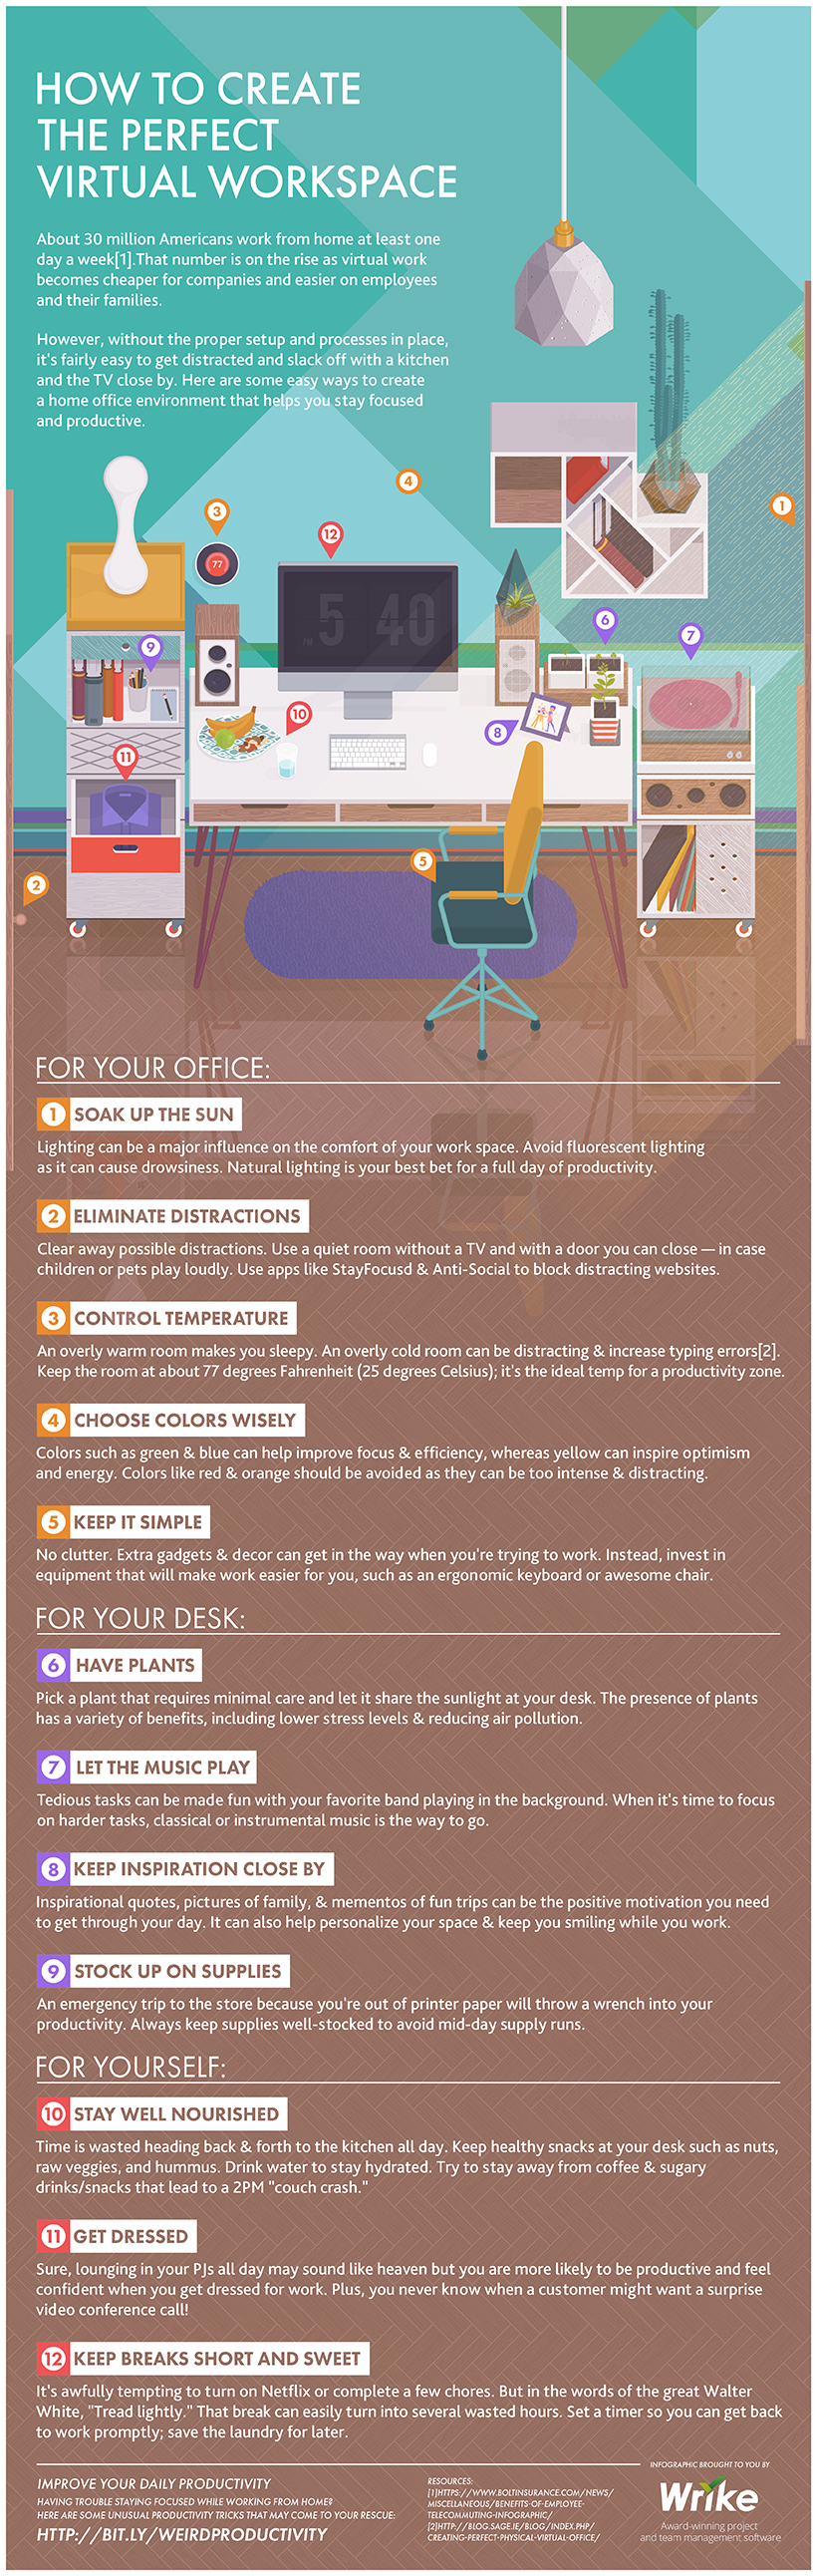 How to maximize productivity when working from home [infographic]